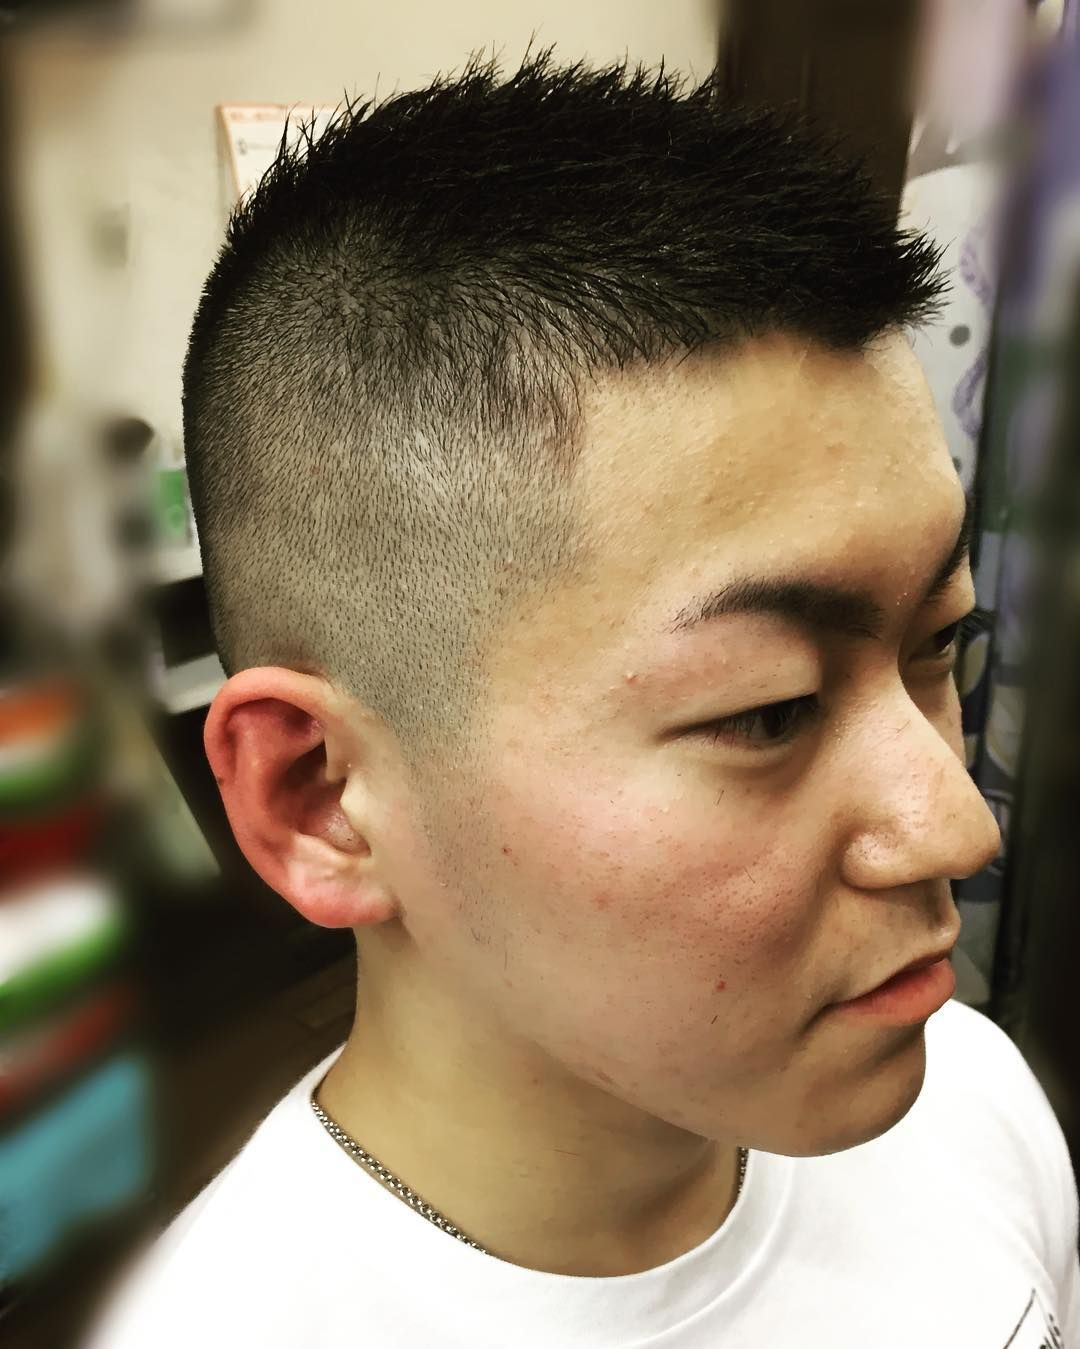 Japanese Men Hairstyles Cover It All From The Coolest To The Boldest Haircuts There Are Japanese In Mens Hairstyles Japanese Men Hairstyle Japanese Hairstyle